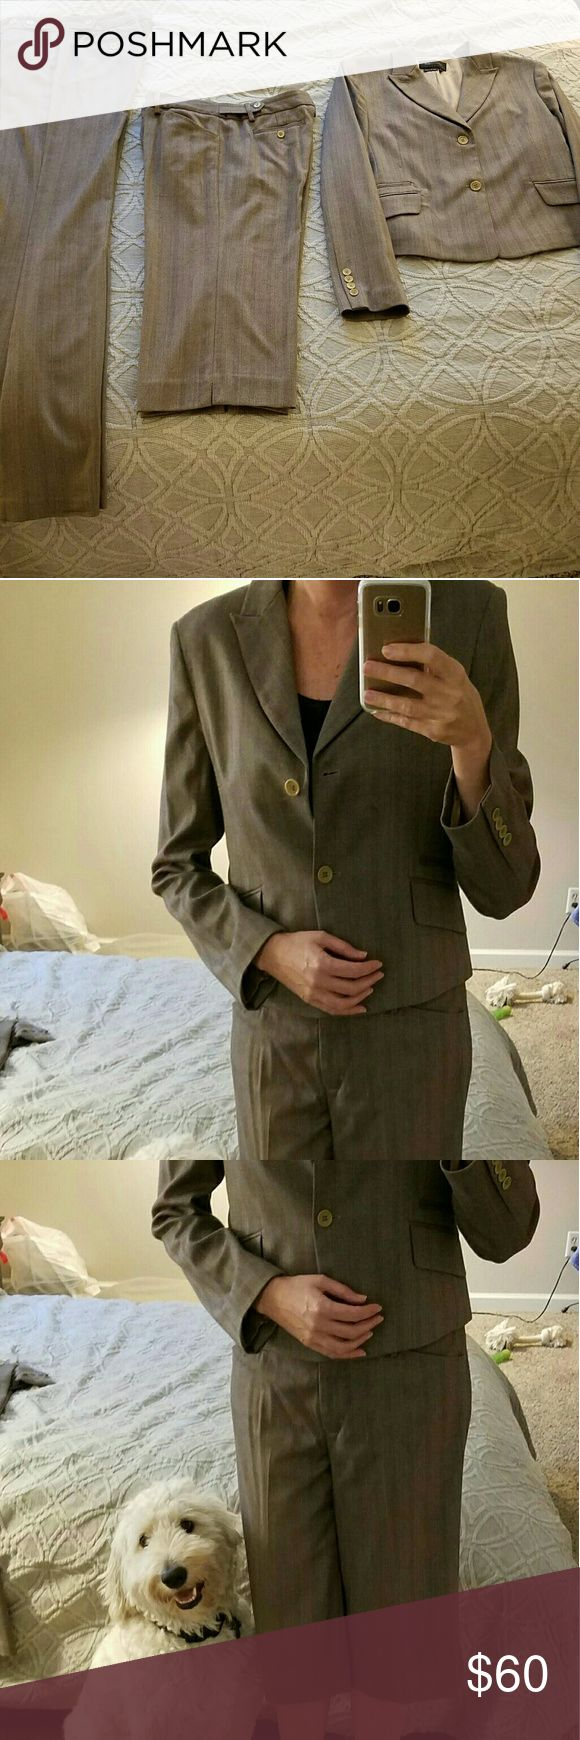 """BCBGMaxAzria 3 piece suit (blazer, slacks, capri) BCBG MaxAzria 3 piece brown suit. I've lost a bit of weight, so my suits no longer fit me. Pants are size 10. Jacket is a Large. Capri pants are dressy, hit below the knee. I'm 5'-11"""" and pants are plenty long & can be hemmed.  All 3 pieces sold together. I will not sell separately. Sorry no trades, I'm trying to purge! Full disclosure, I do not smoke, however I have a hypoallergenic Labradoodle (photobomb) that doesn't shed (not for sale…"""